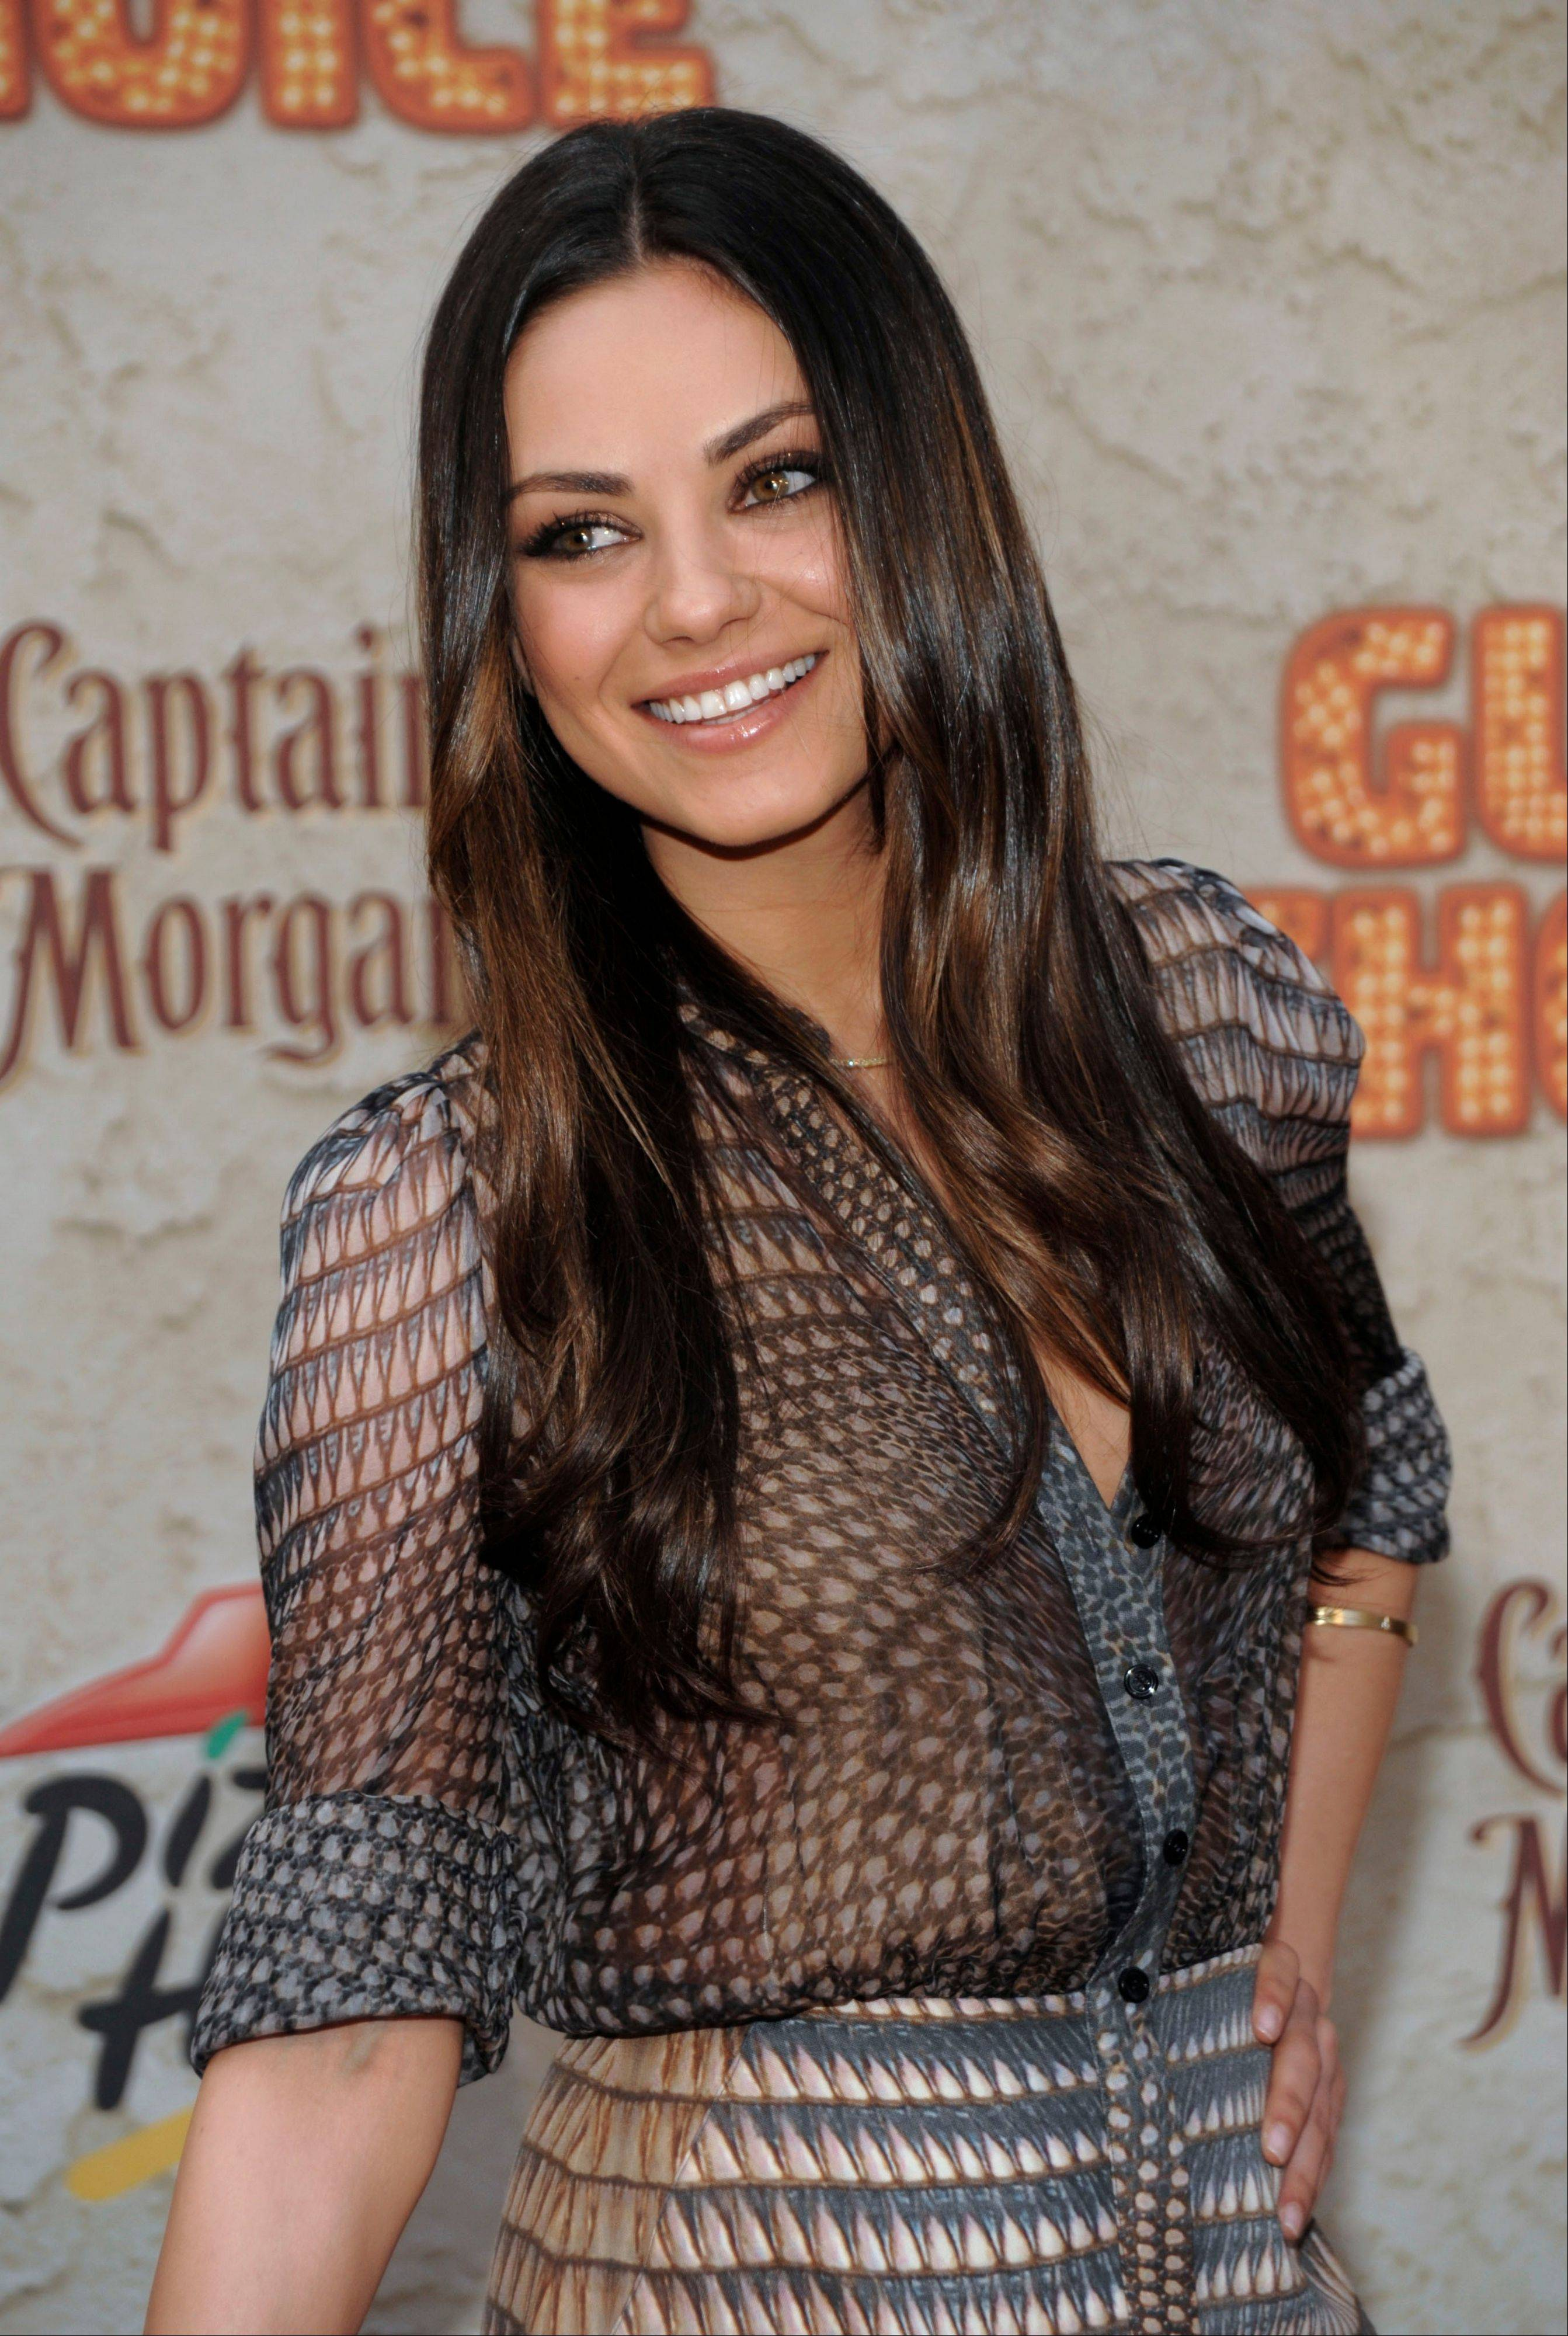 Actress Mila Kunis has agreed to accompany Marine Sgt. Scott Moore at the Marine Corps Ball in November after Moore posted a YouTube video asking Kunis to join him.